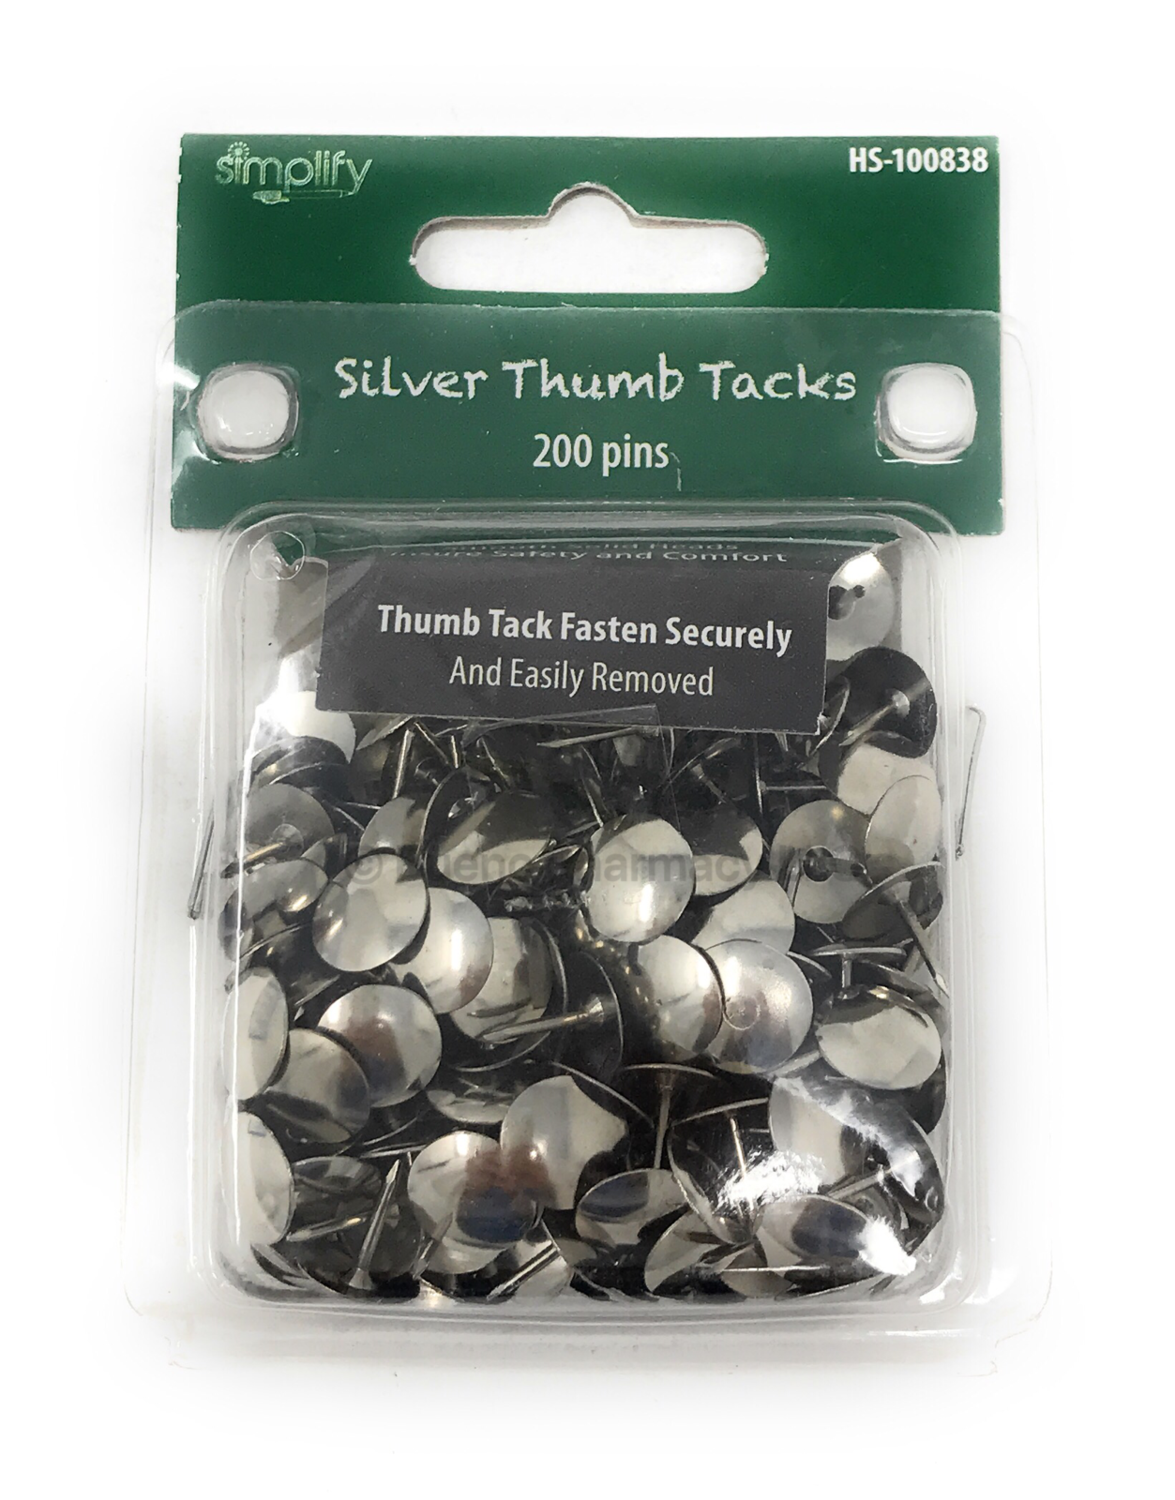 THUMB TACKS SILVER SIMPLIFY 200P